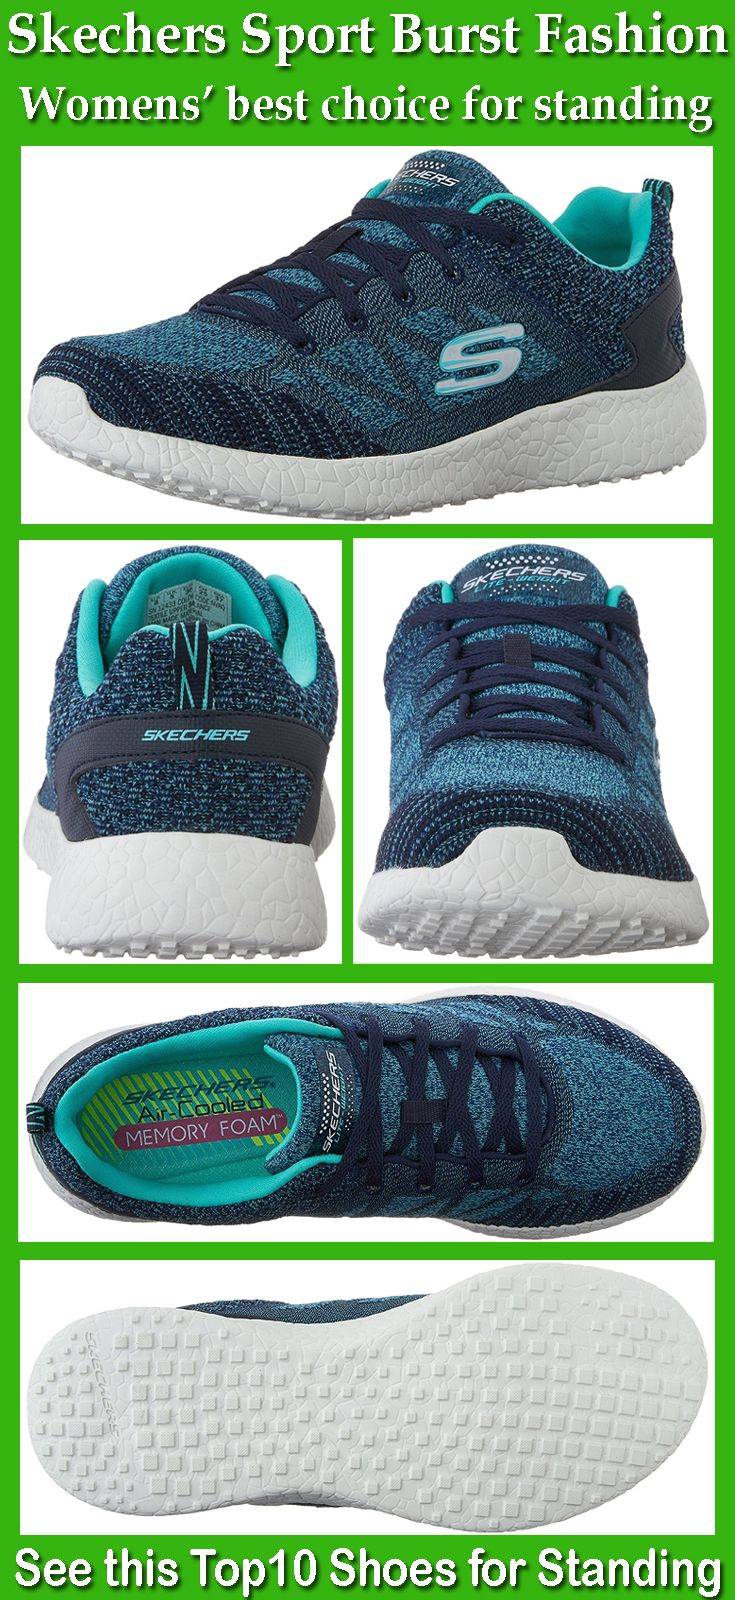 Skechers Air Cooled Memory Foam Sneaker Is Lightweight And It Is